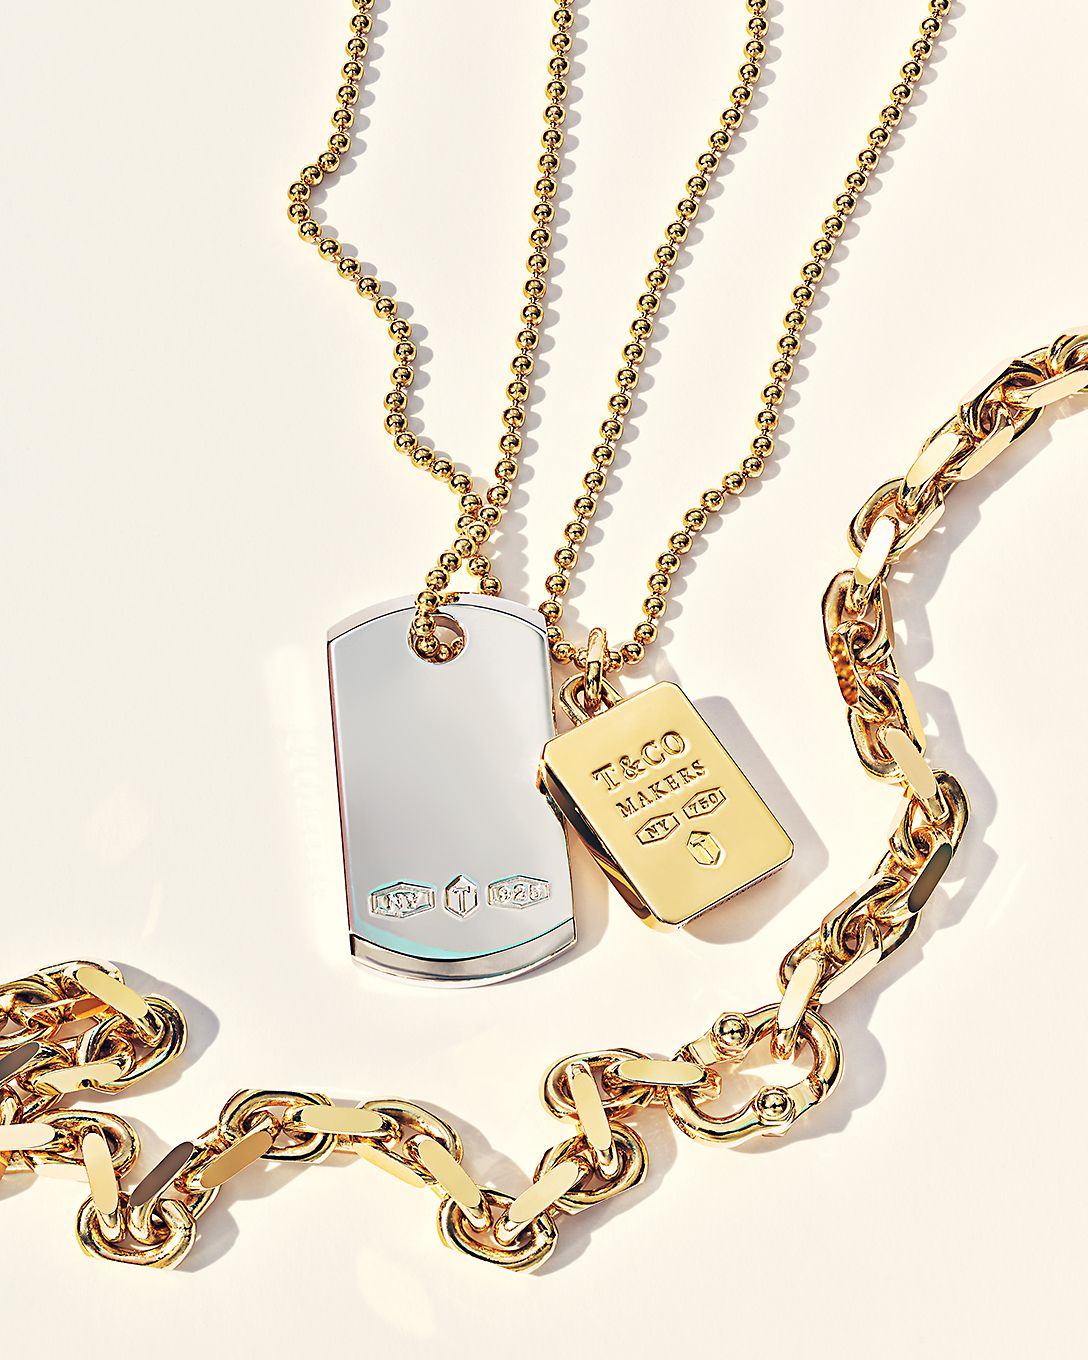 Tiffany & Co. Men's Necklaces & Chains